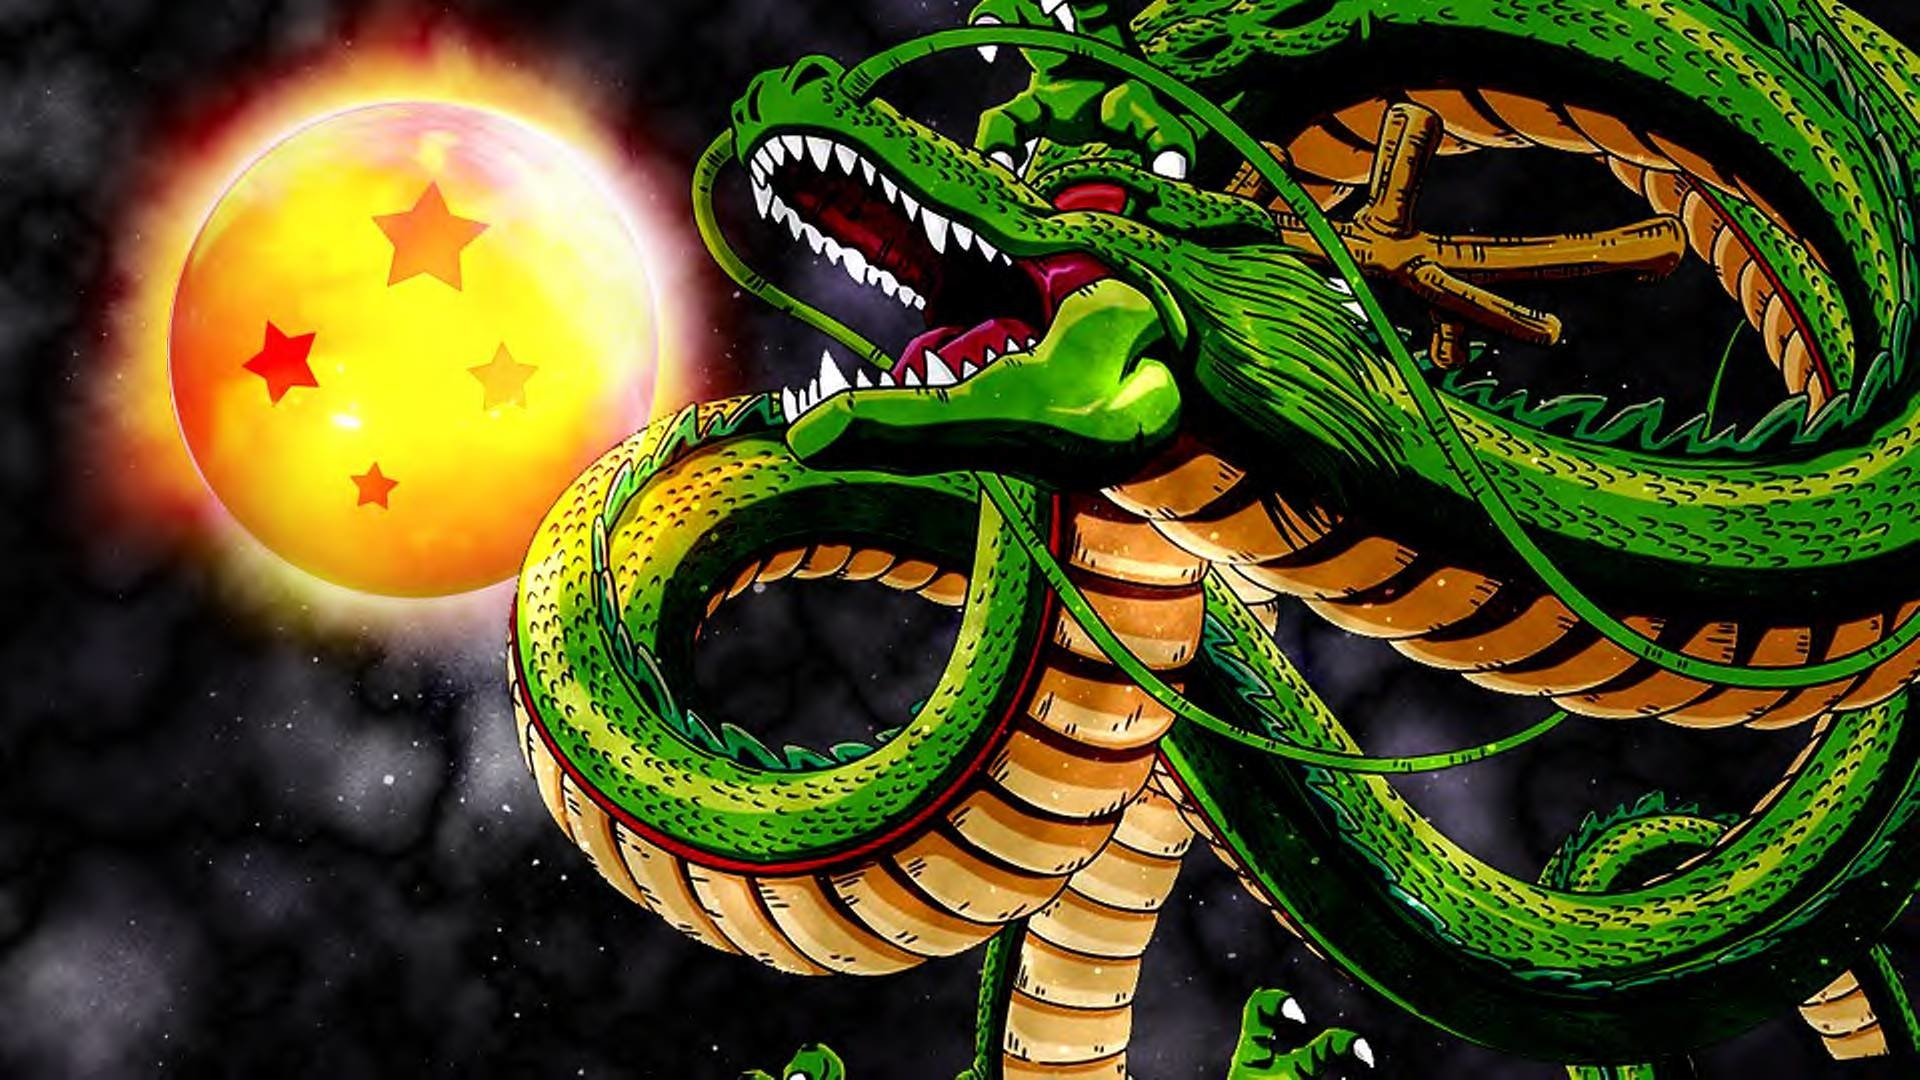 Anime - Dragon Ball Z  Shenron (Dragon Ball) Anime Artistic Wallpaper